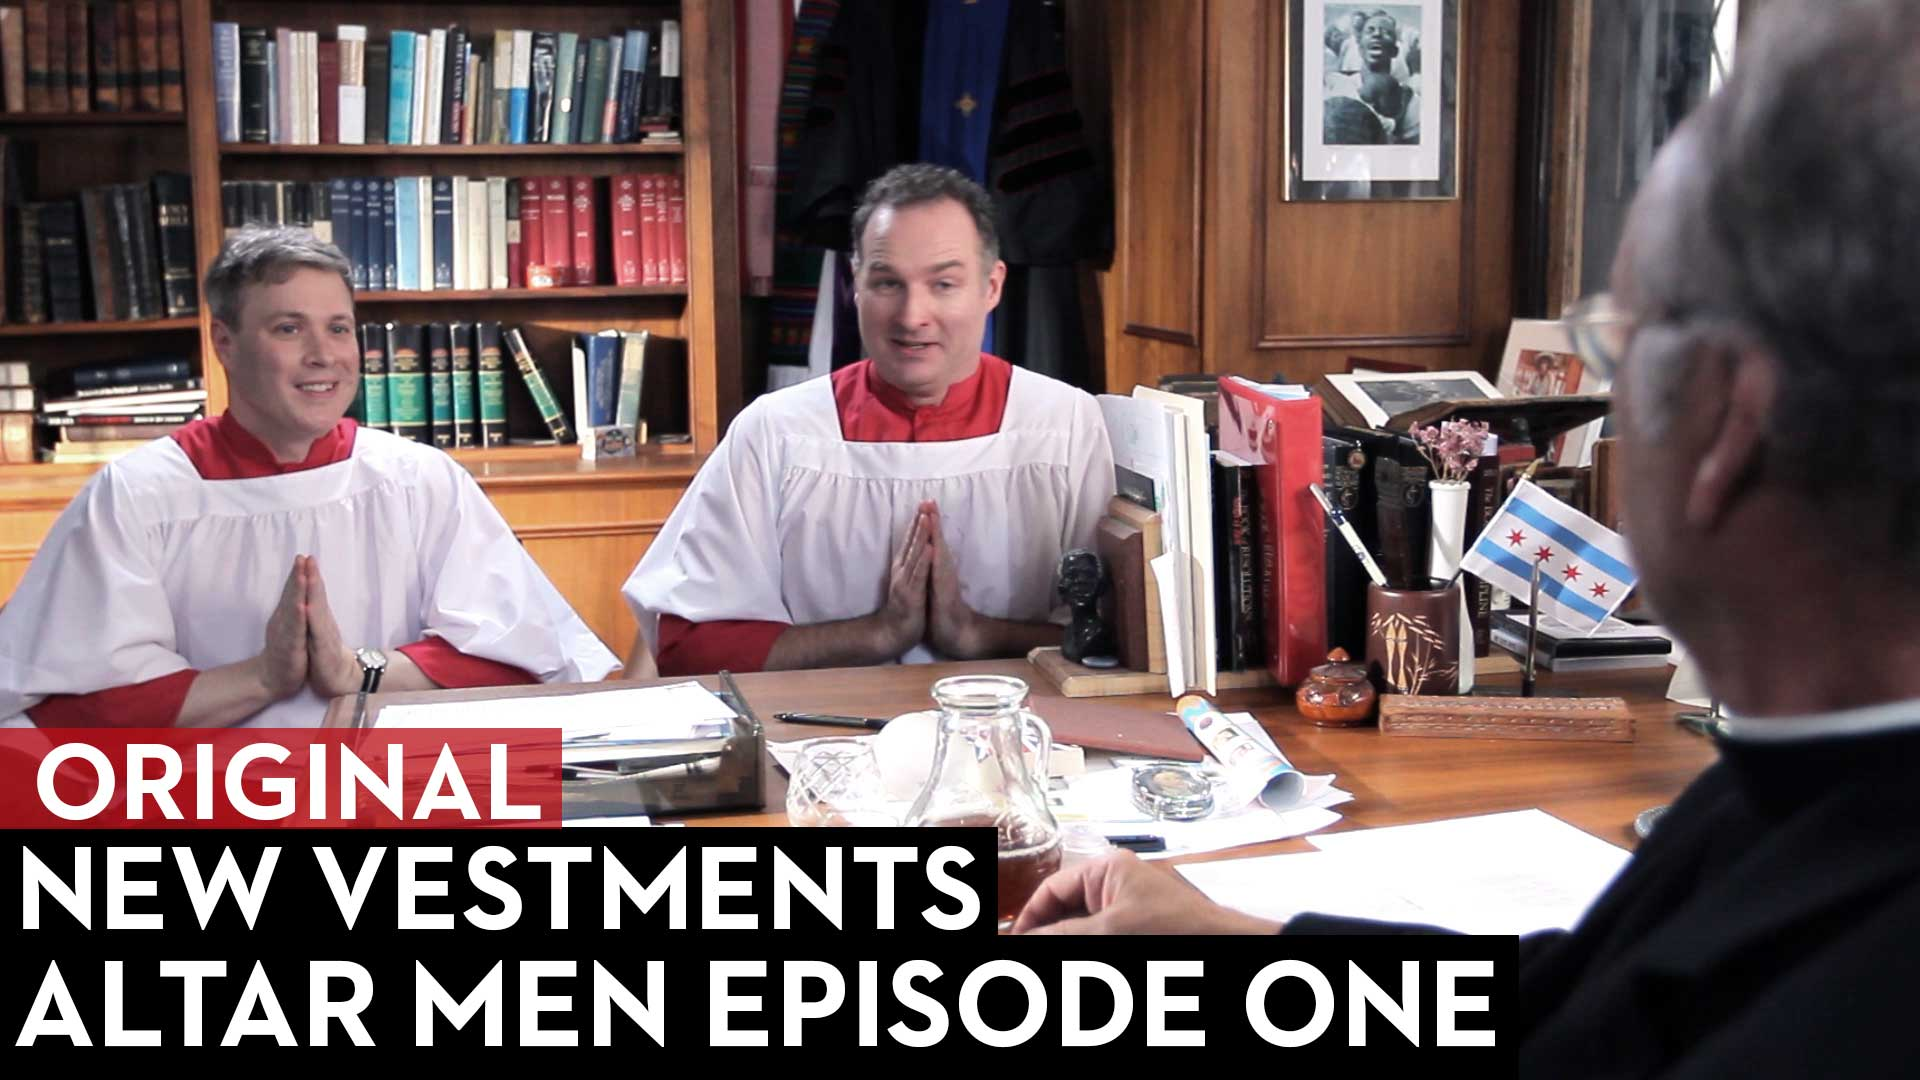 New Vestments: Altar Men Episode 1